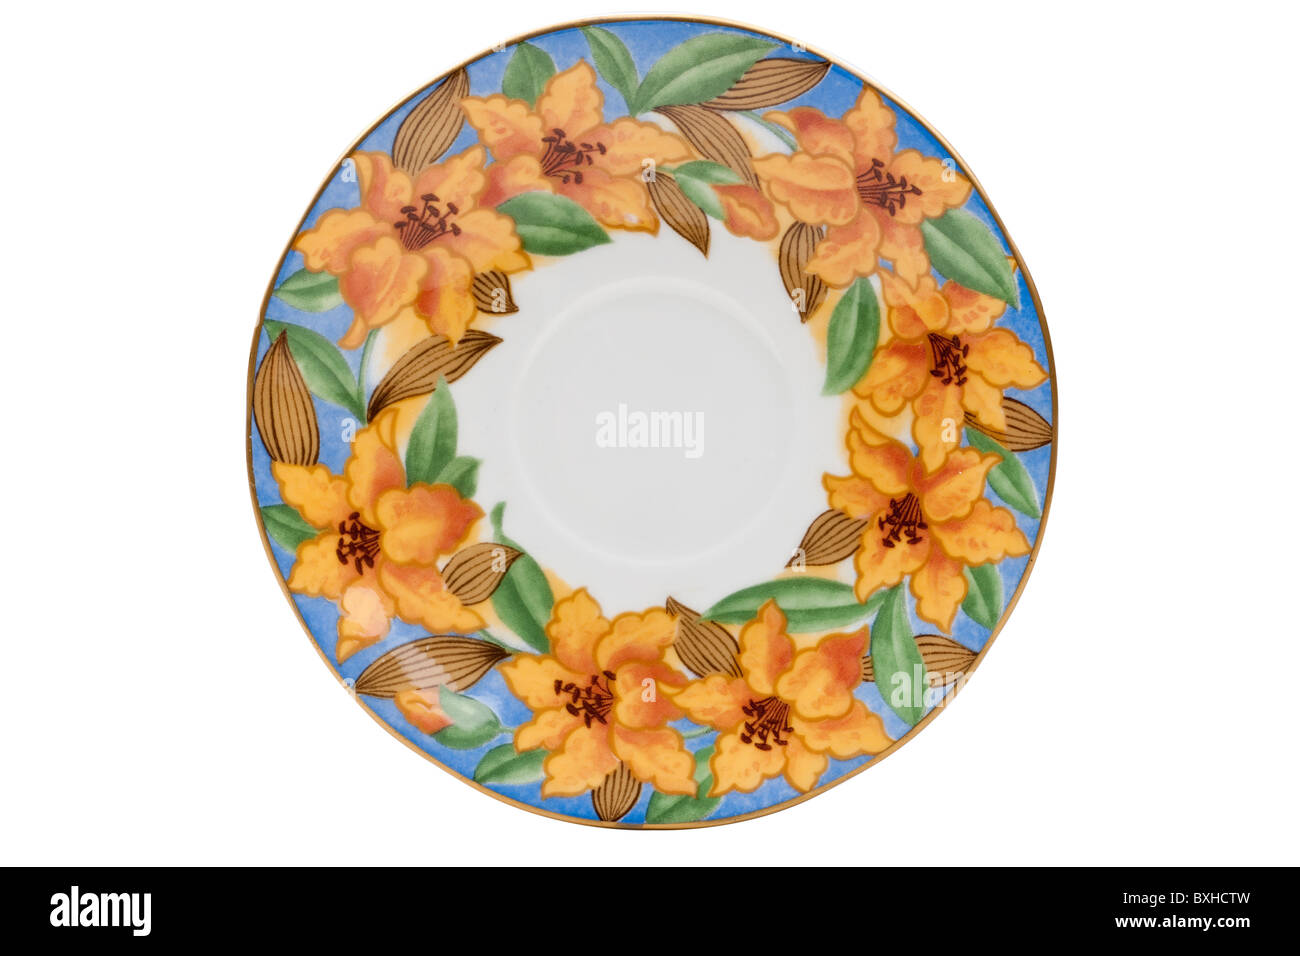 Art Deco flowered saucer - Stock Image